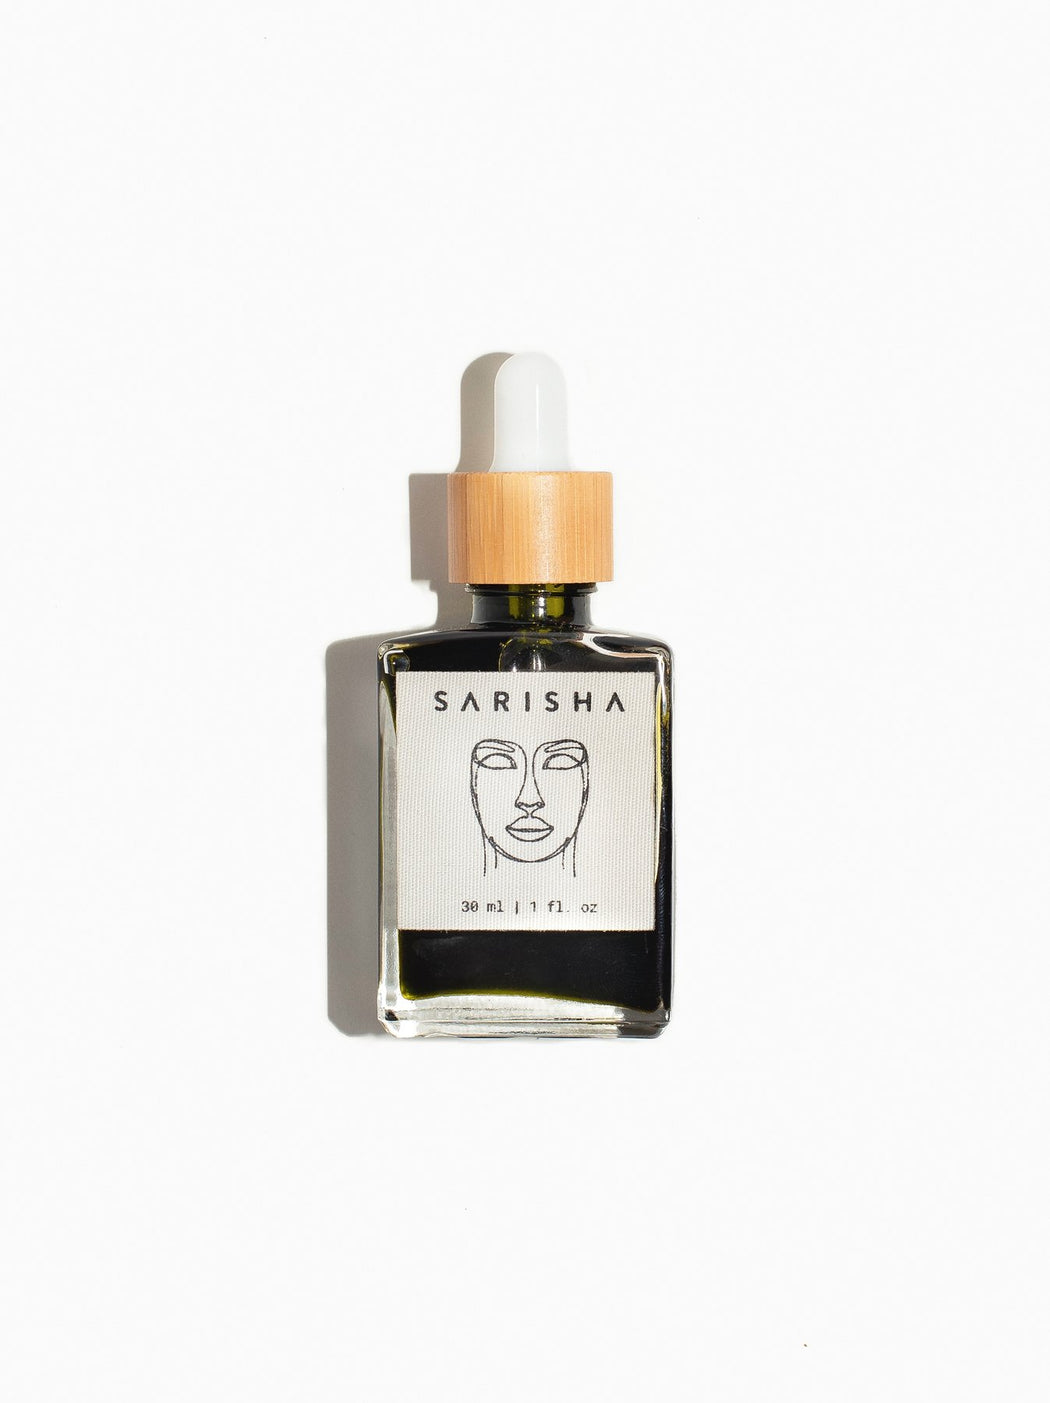 Sarisha Beauty Green Goddess Glow Oil. Available at Easy Tiger Toronto.